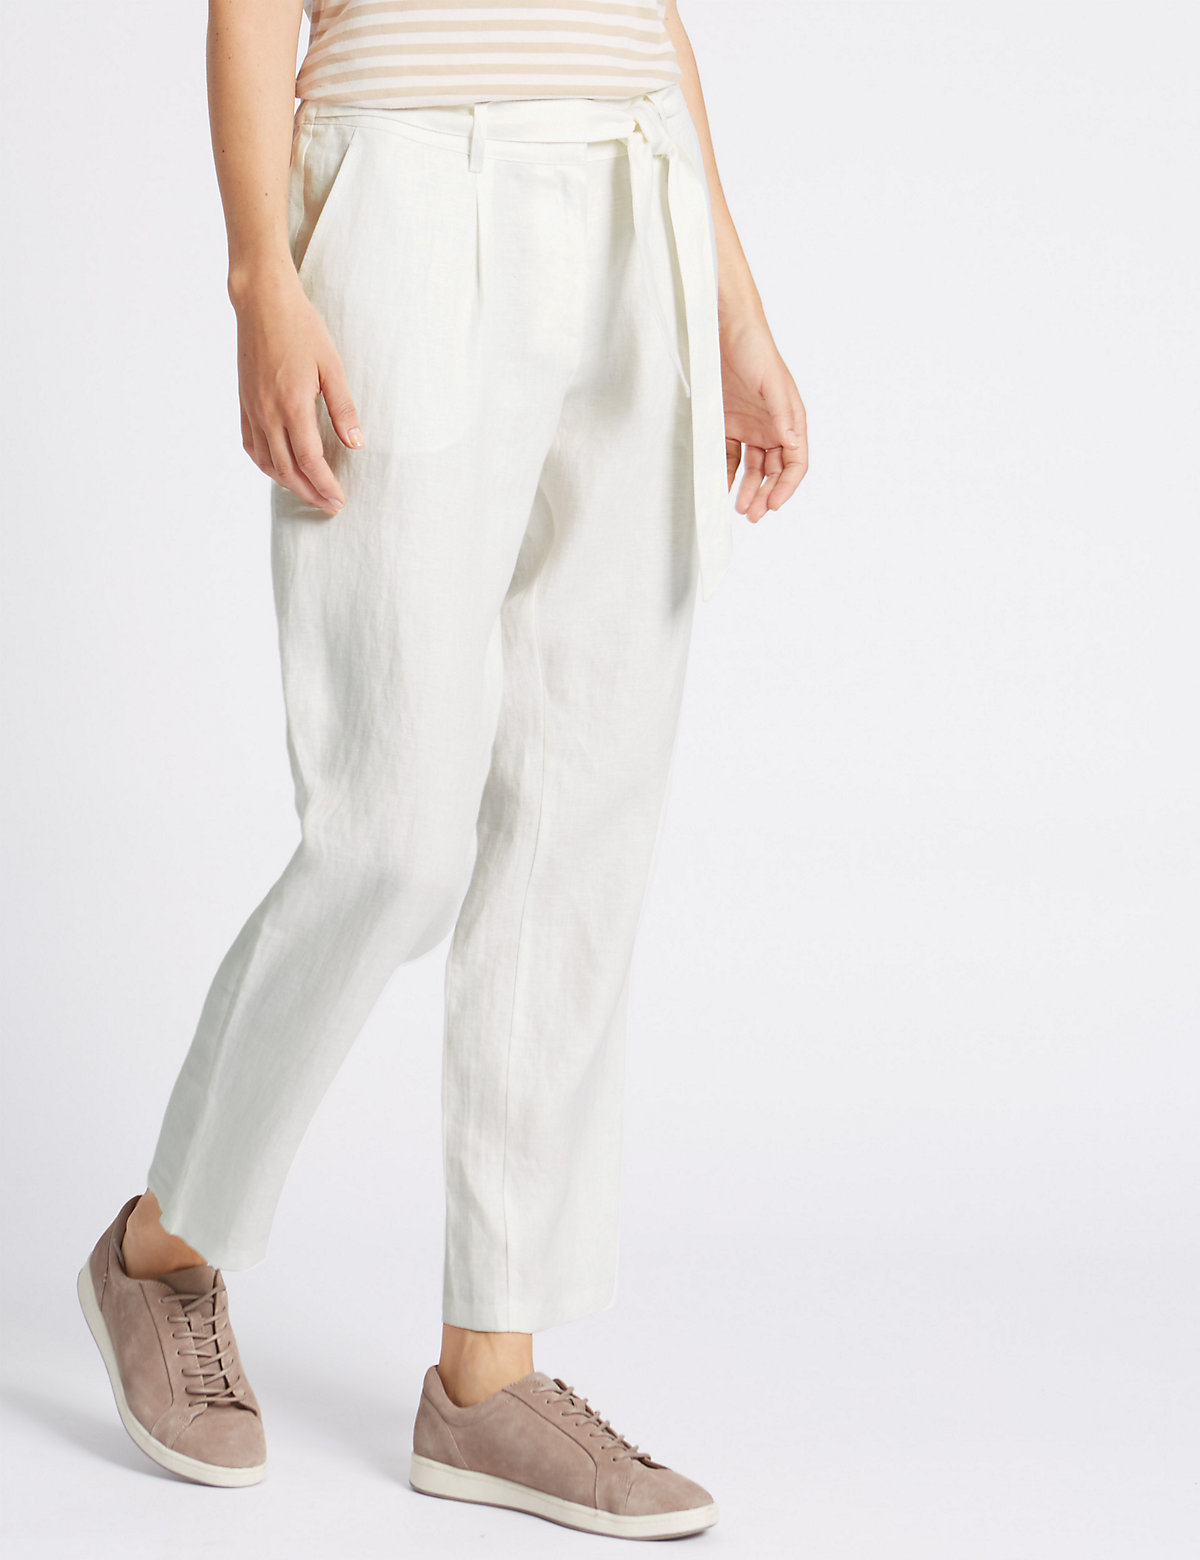 Classic Pure Linen Tie Waist Tapered Leg Trousers